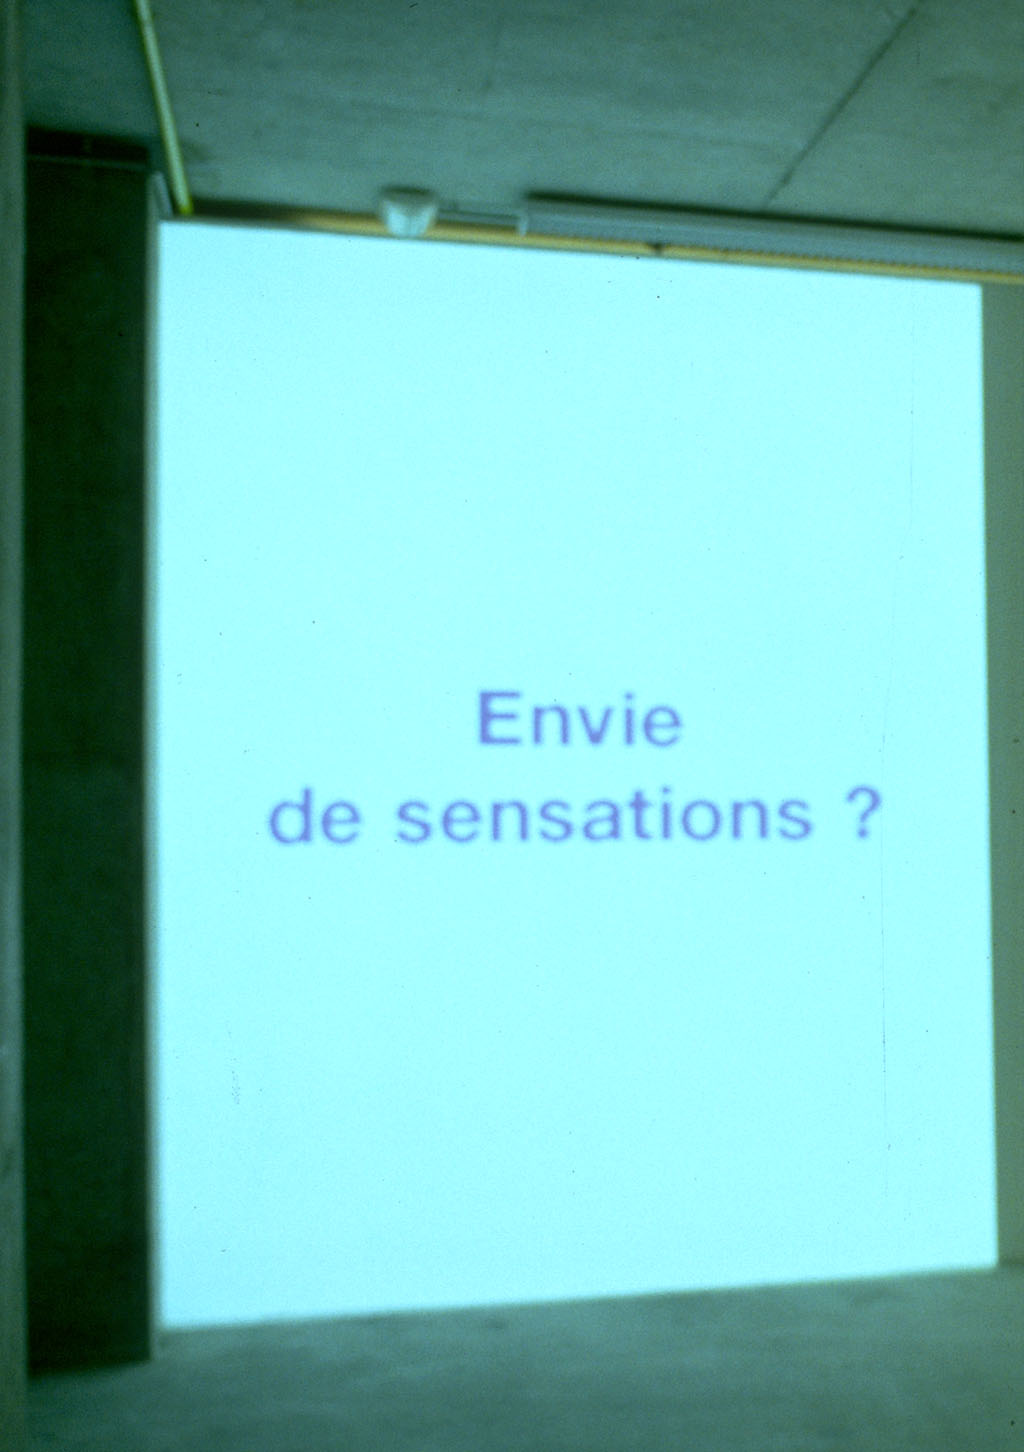 Claude Closky, 'Envie... [wish to...]', 1999, projector, computer, silent, unlimited duration. Exhibition view 'Claude Closky', CCC, Tours. 19 November 1999 - 16 January 2000. Curated by Alain-Julien Laferrière